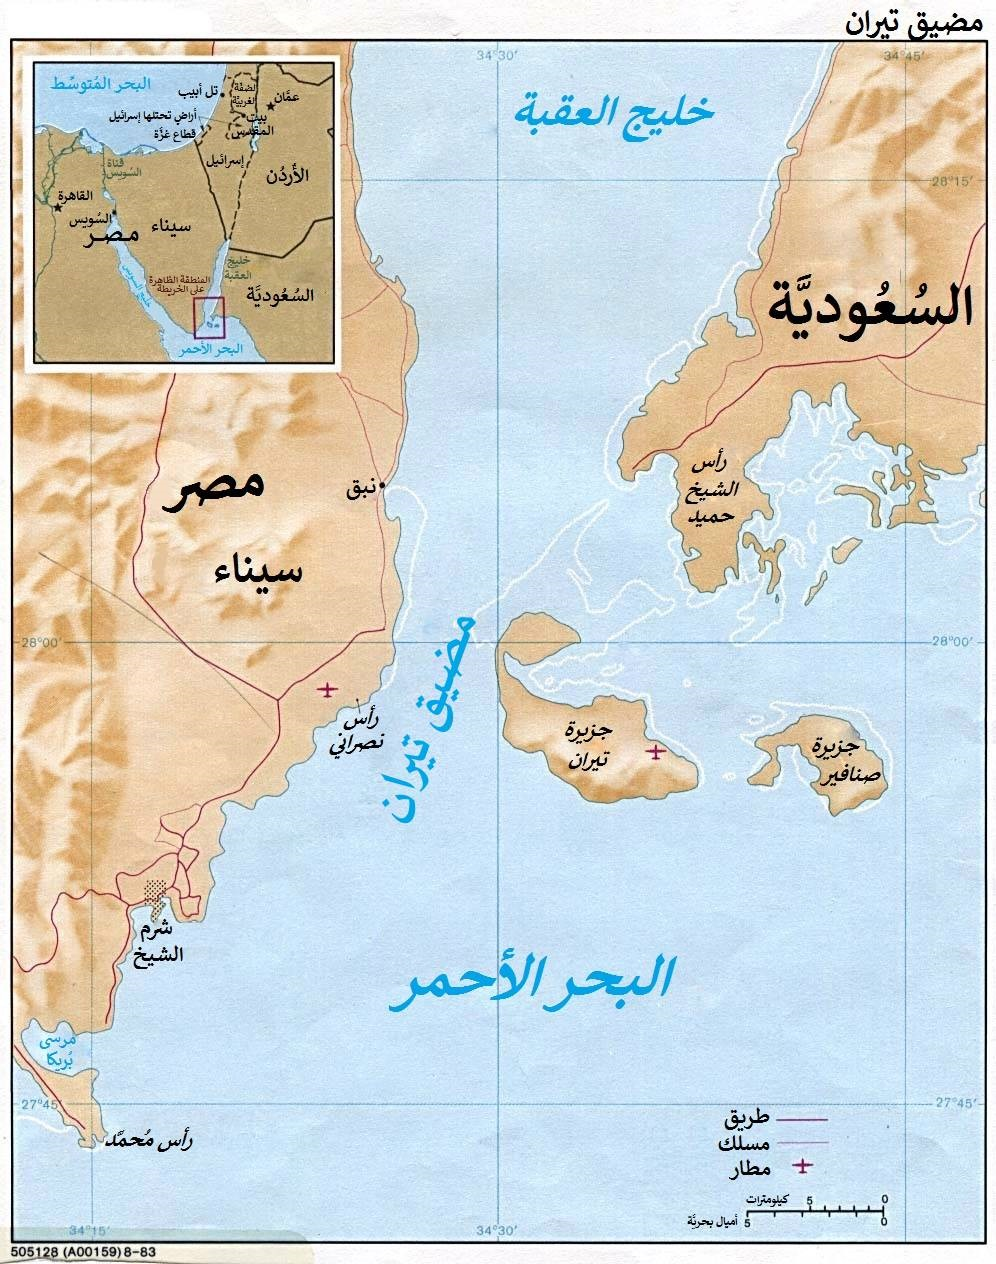 https://upload.wikimedia.org/wikipedia/commons/4/4b/Strait_tiran_83-ar.jpg